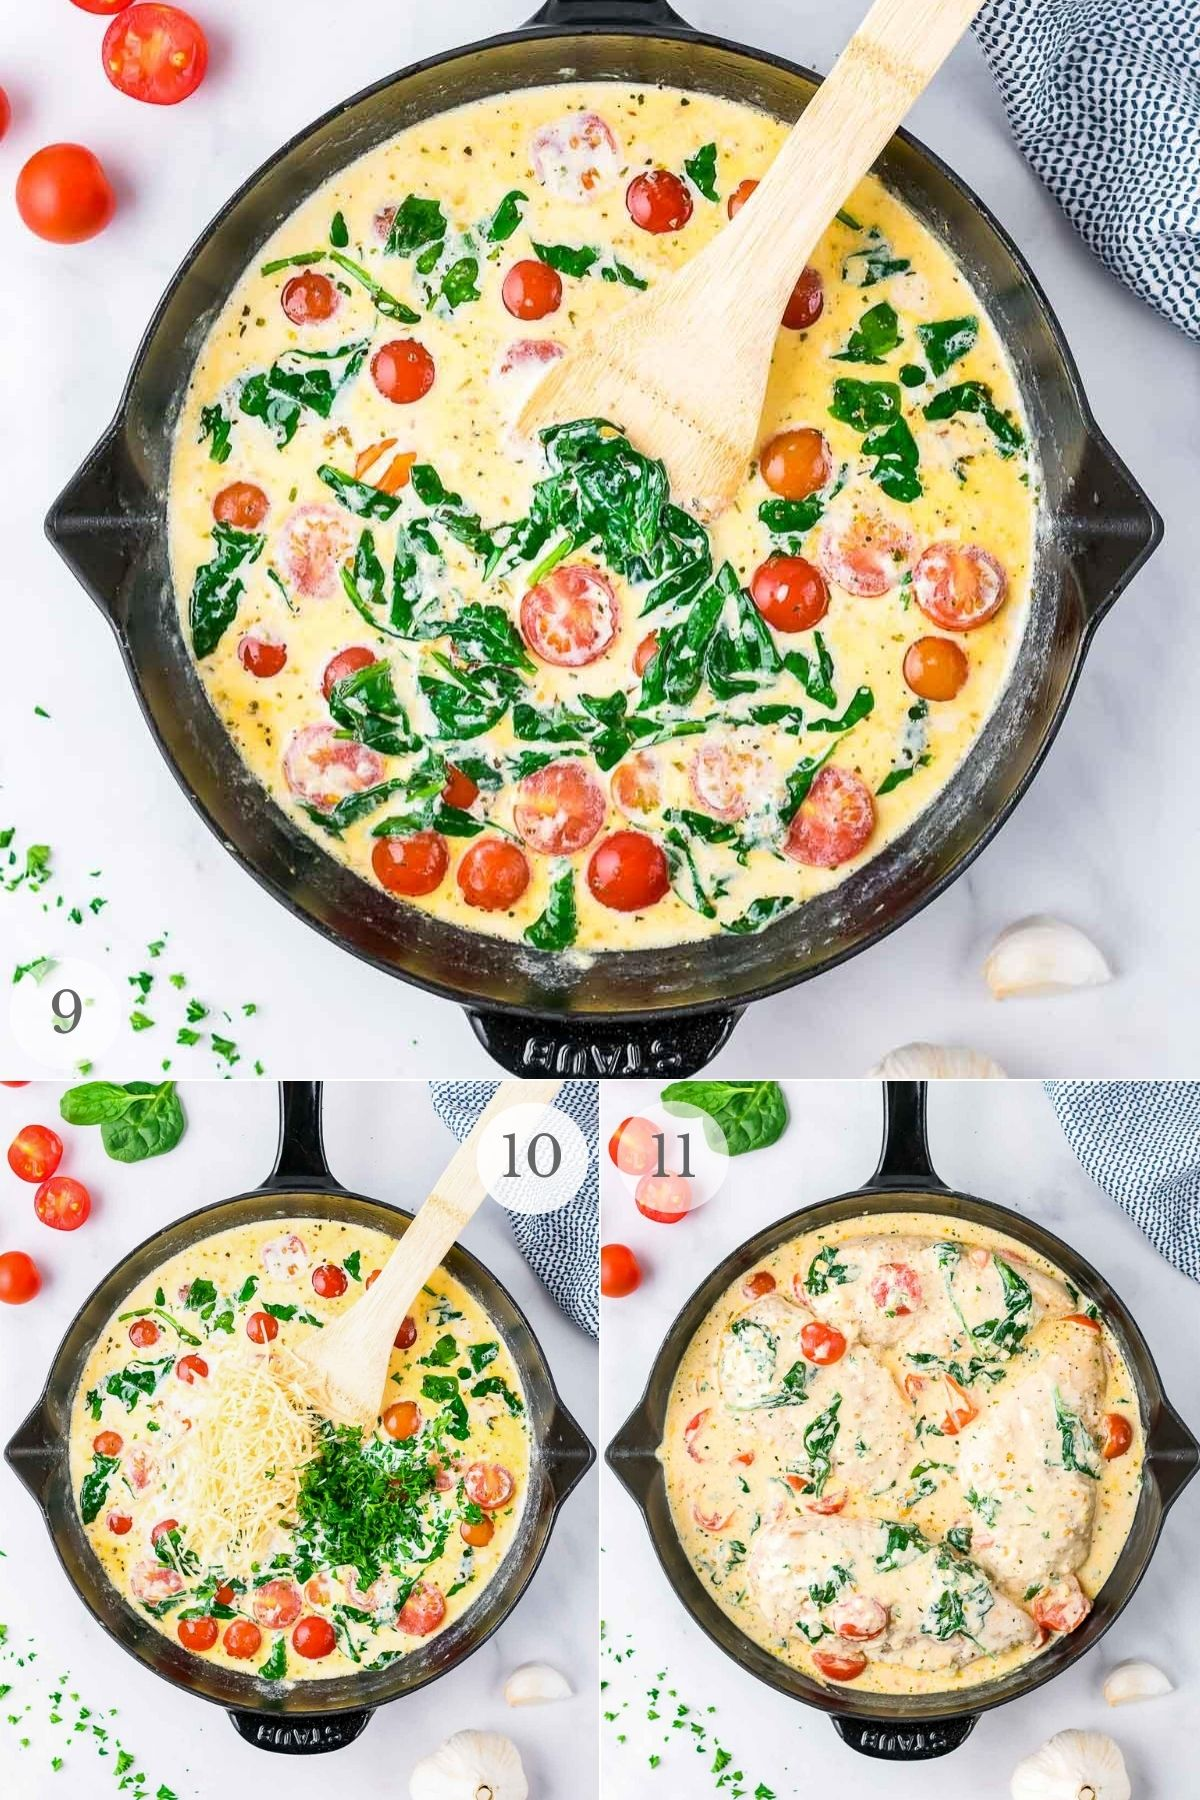 creamy tuscan chicken recipe steps 9-11